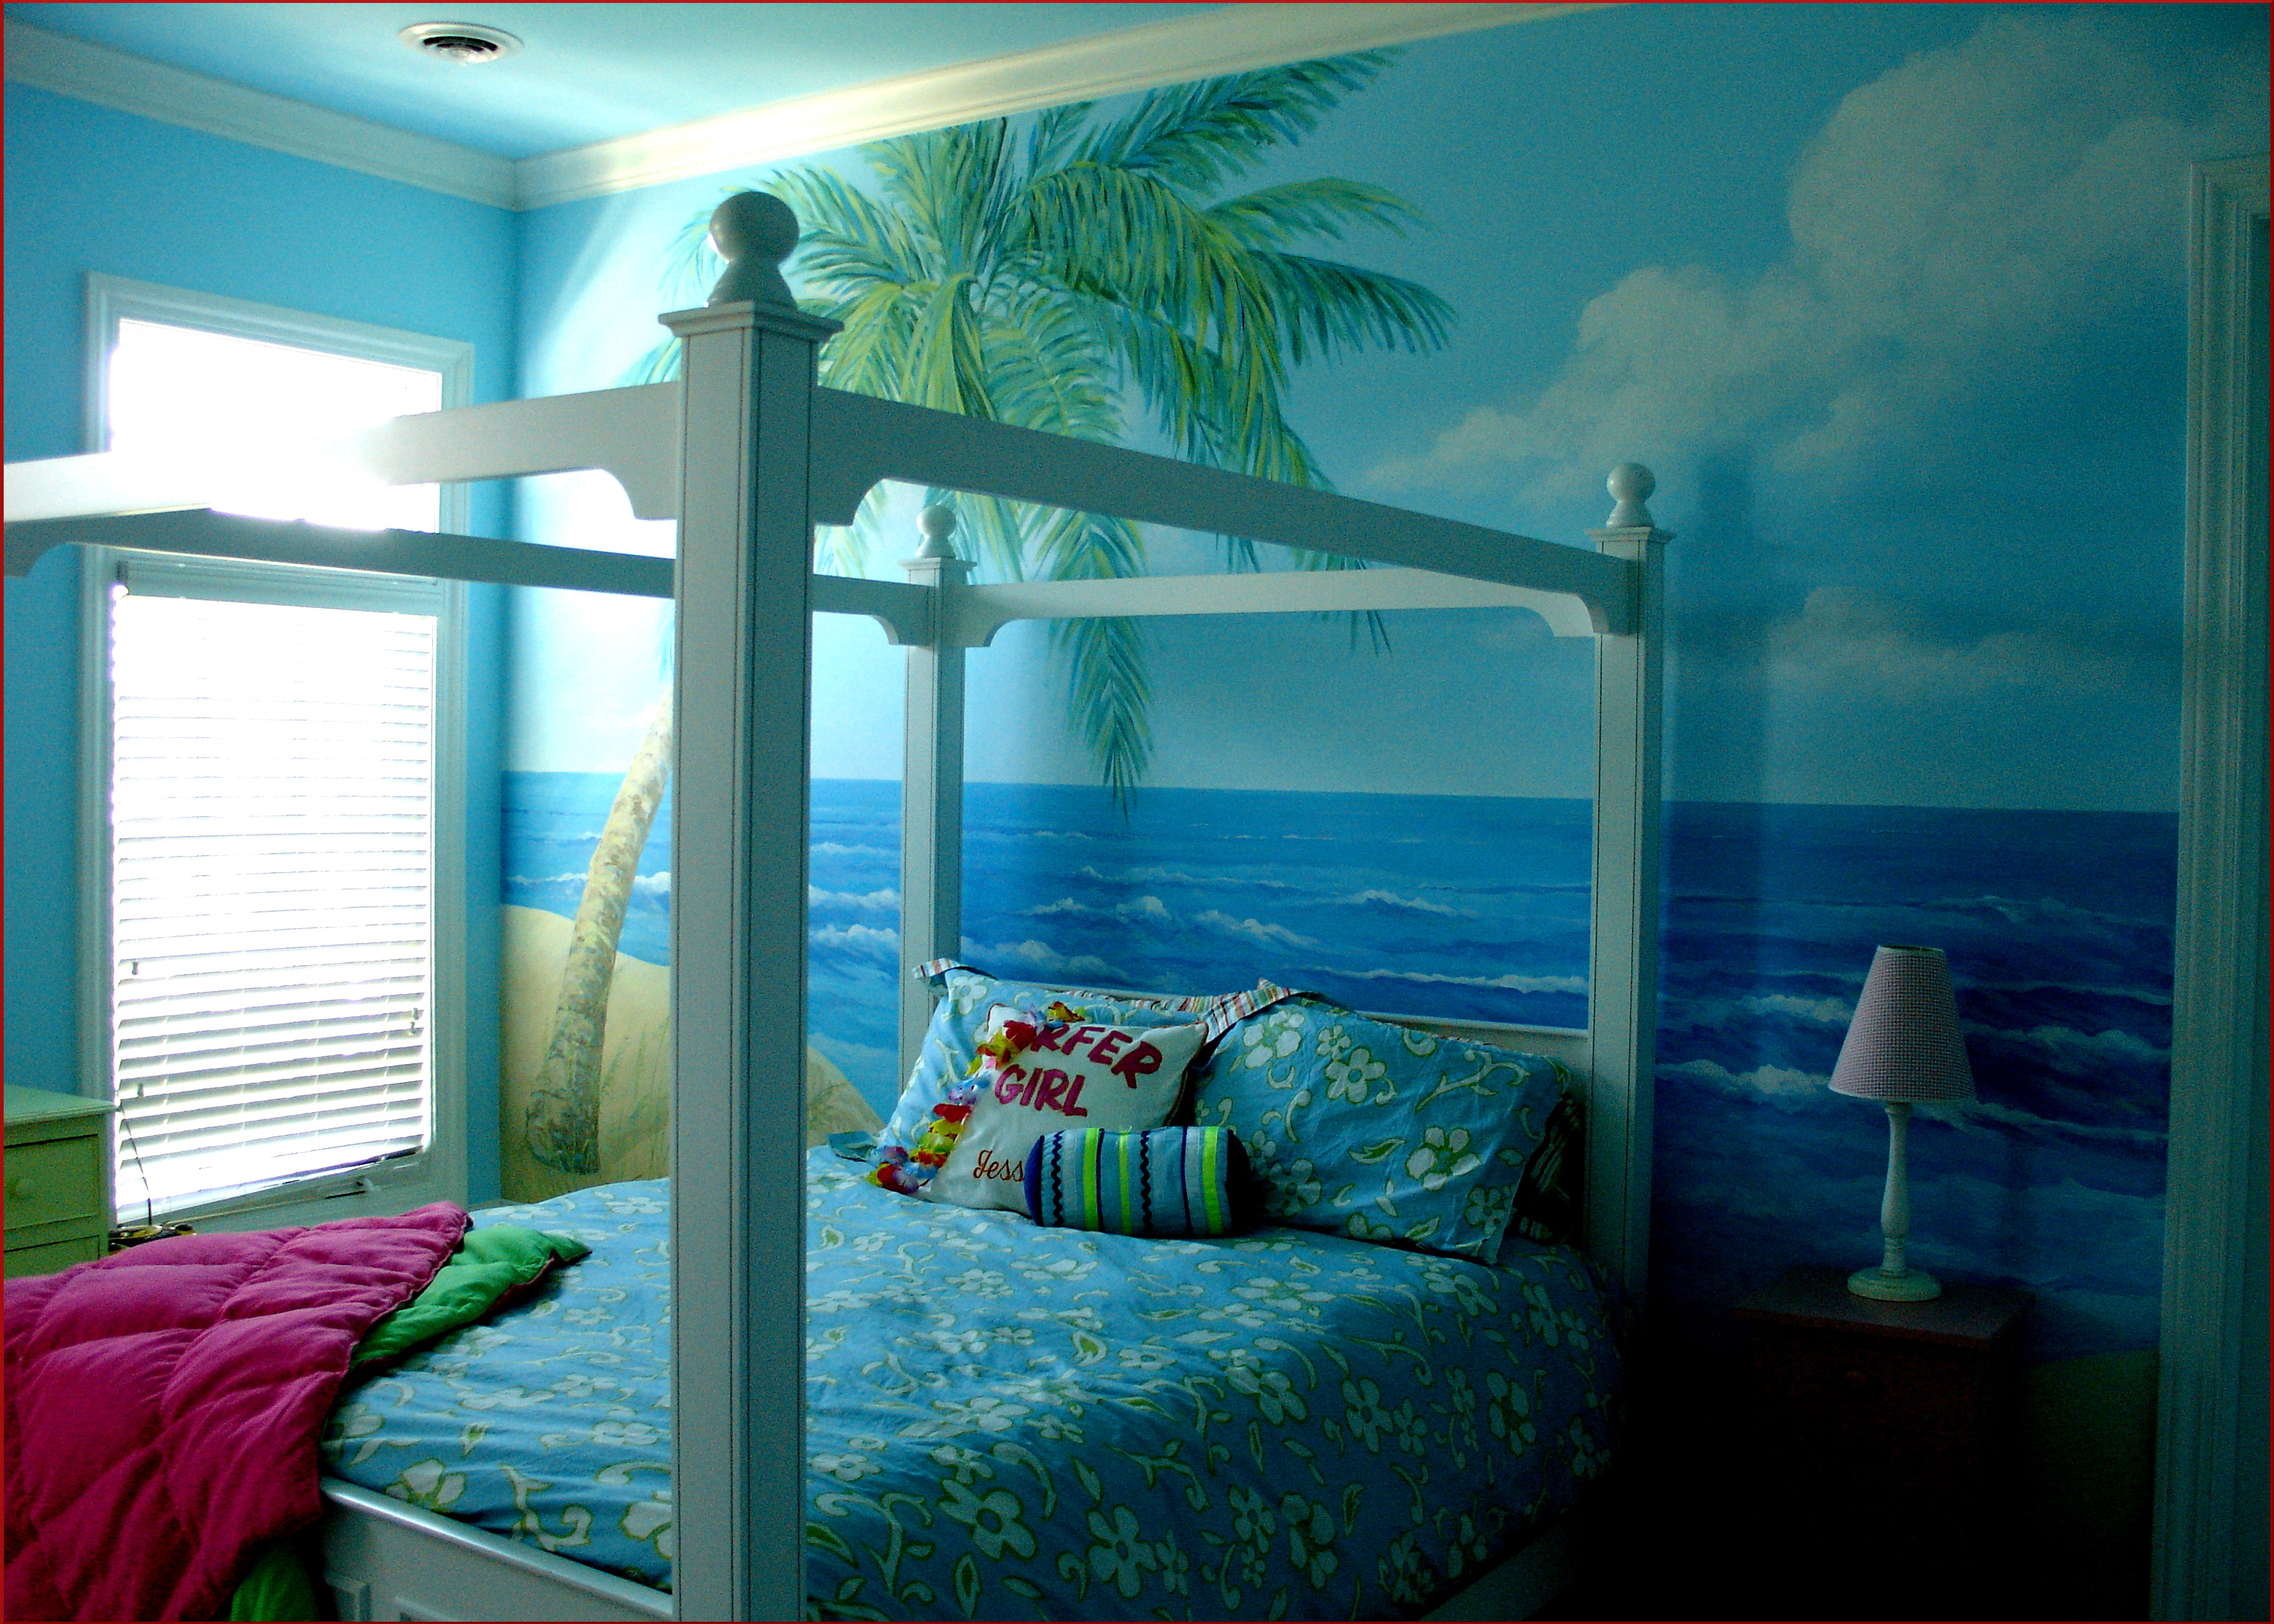 Michael j romeo assoc kids murals for Bedroom mural painting